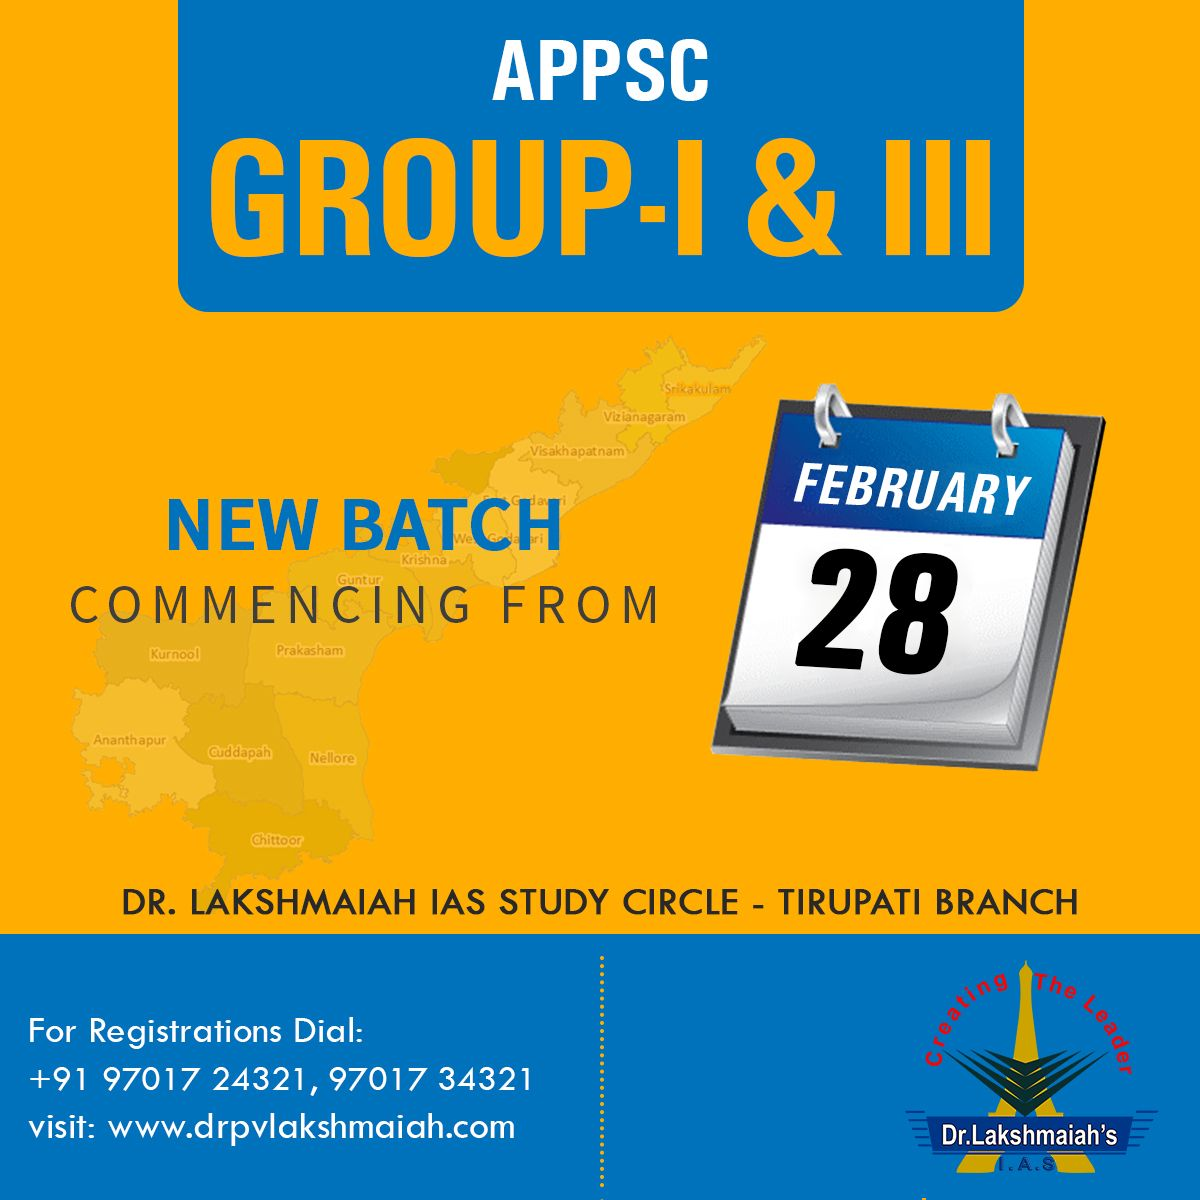 New Batch For Appsc Group 1 3 Commencing From 28th February 2017 At Tirupati Branch For Registrations Dial 91 97017 243 Study Online Classes Training Center